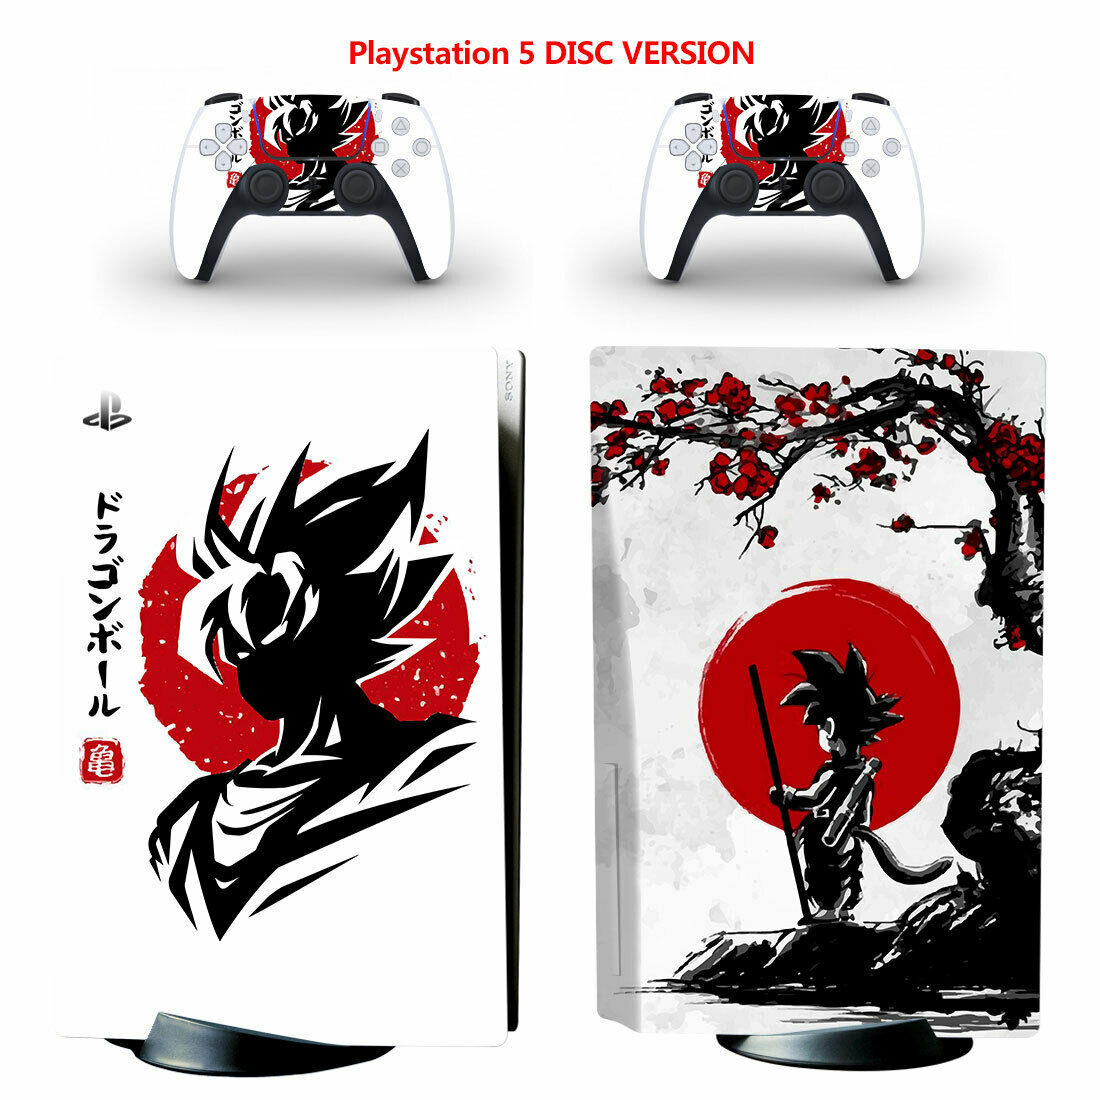 Dragon Ball Vinyl Skin Wrap Sticker for PS5 PlayStation 5 Console Disc Version